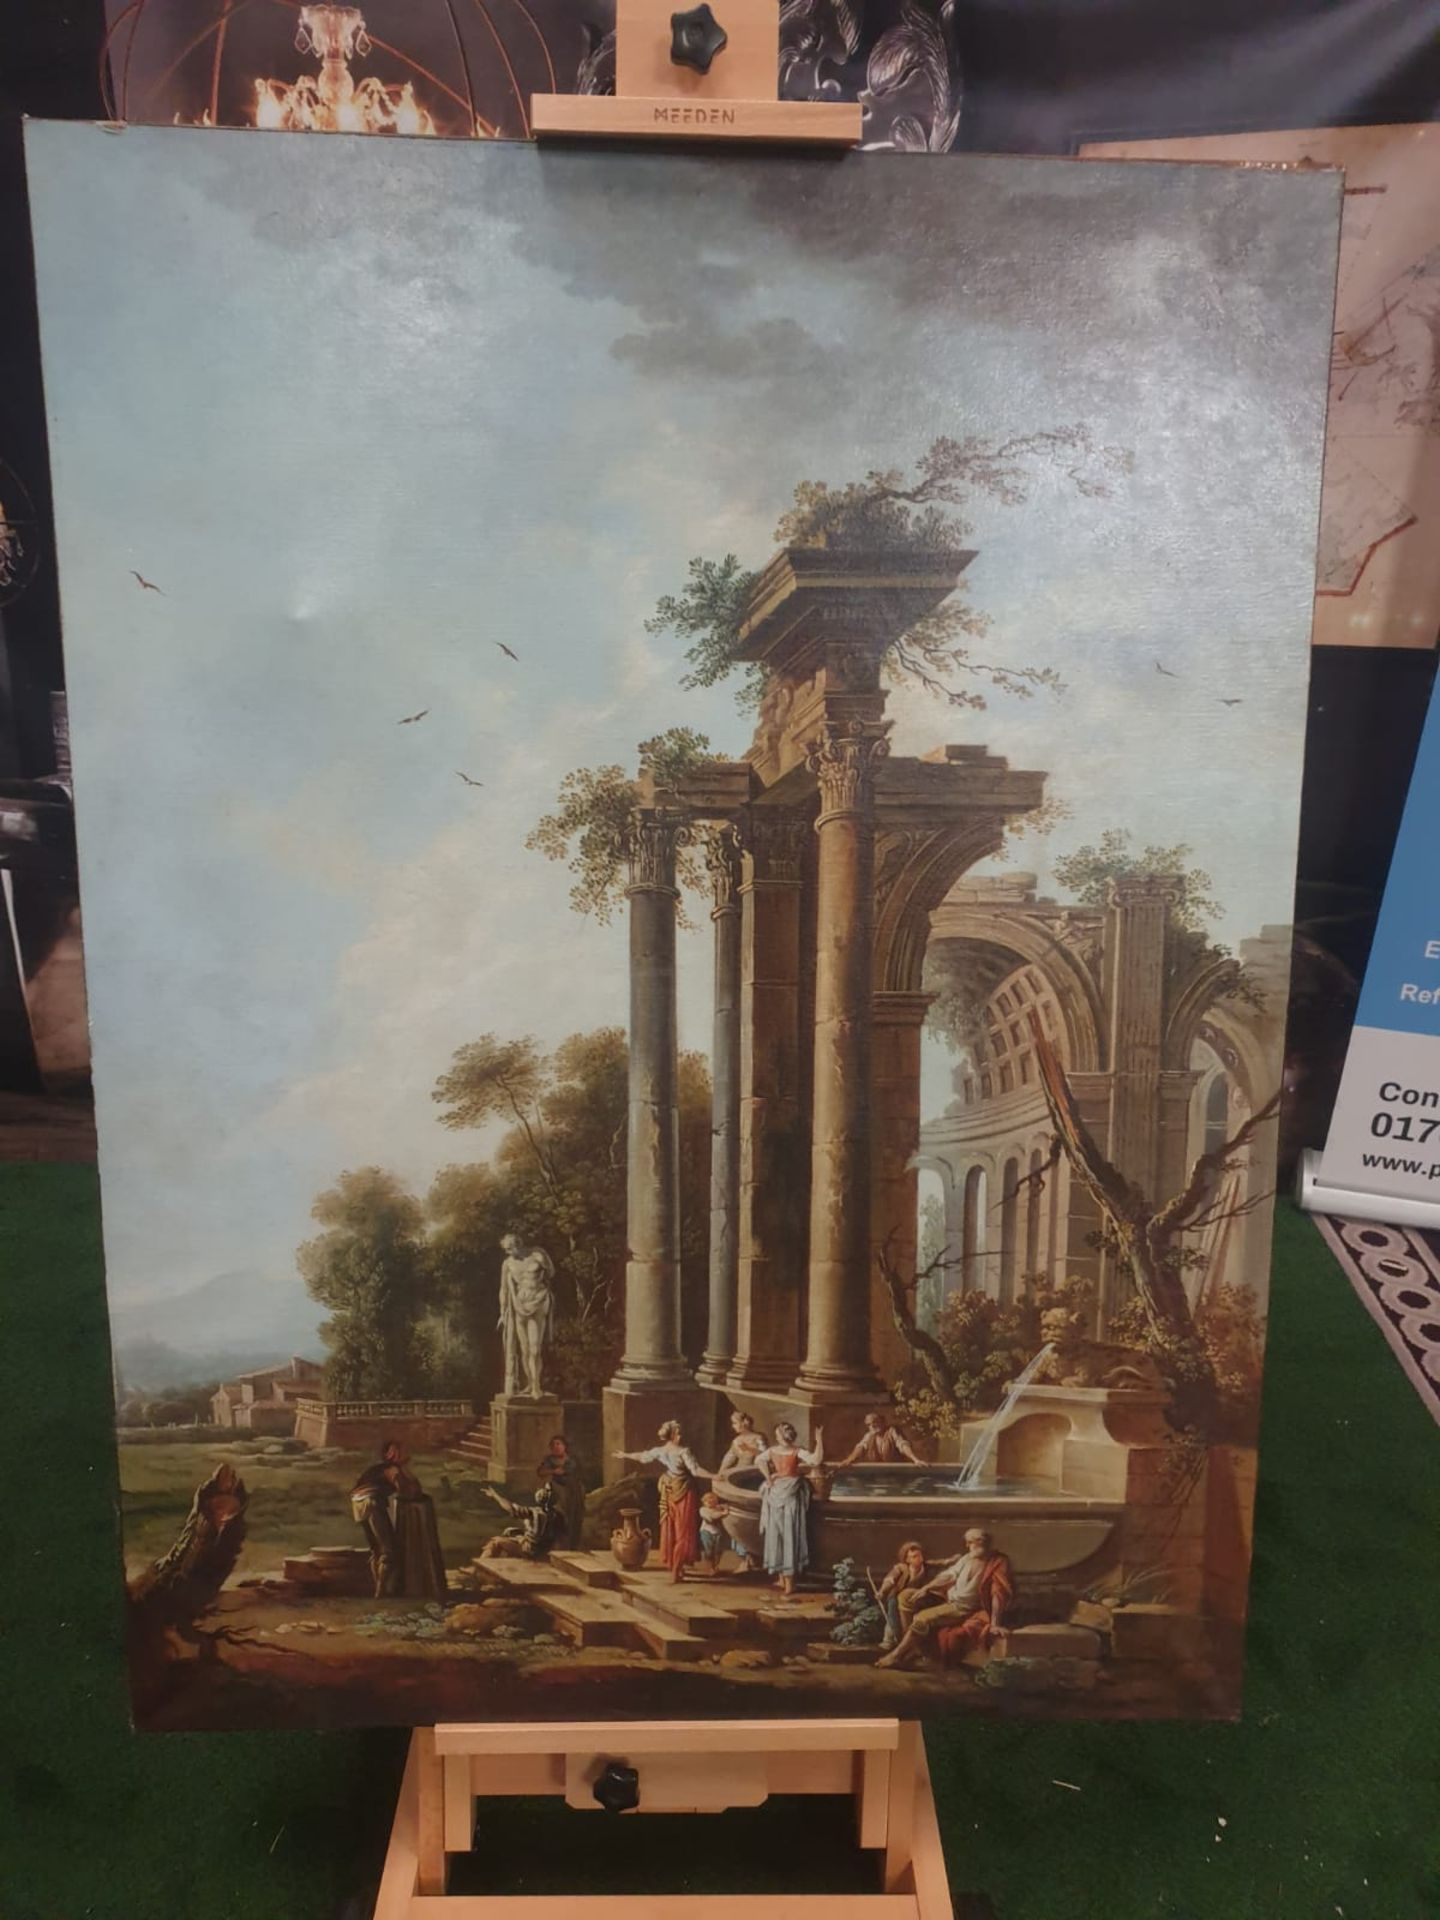 Unframed Canvas Follower of Hubert Robert capriccio with peasants in foreground 90 x 120cm